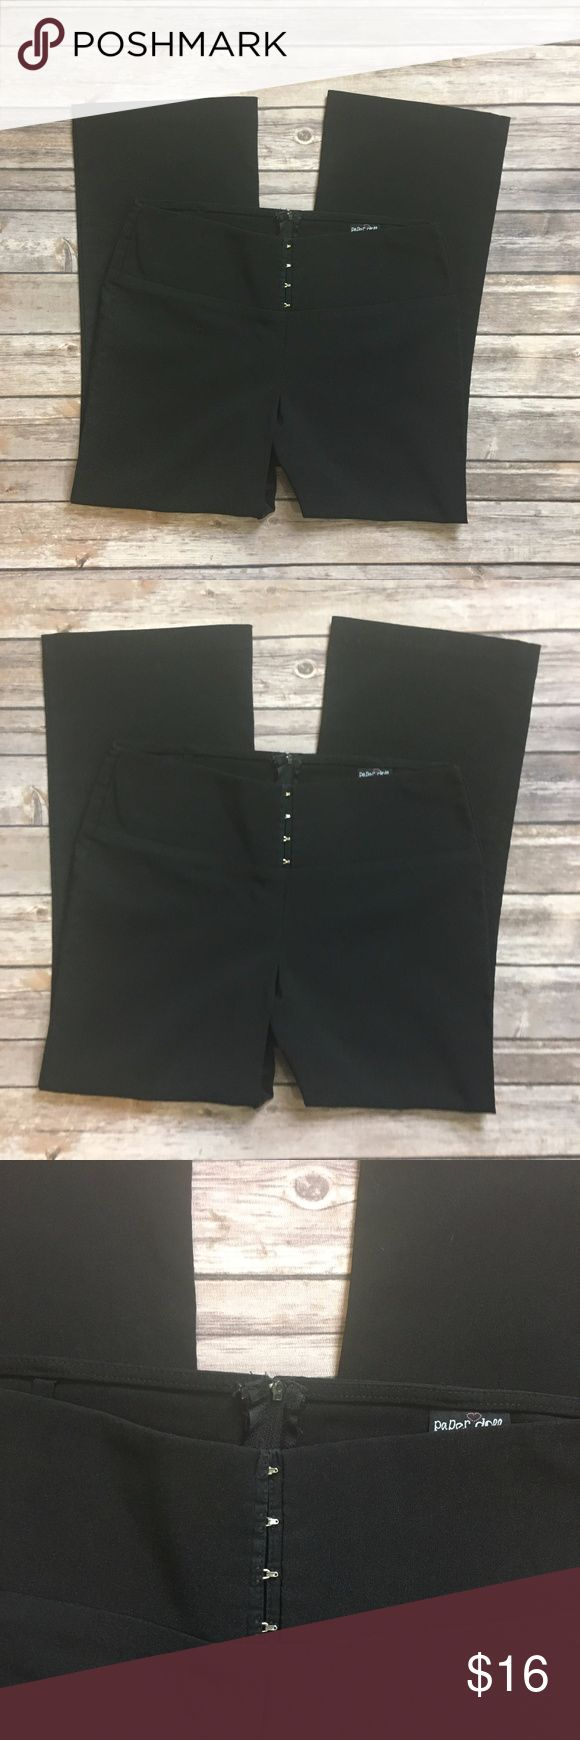 """Paper doll black capri cropped dress pants Paper doll black capri cropped dress pants. Adorable silver clasp front and zipper in back. No pockets, super sleek style. Excellent used condition, no flaws. Measurements: 15"""" waist, 25"""" inseam, 9.5"""" inseam  Bundle & save!  Reasonable offers accepted. I ship the same or next day! No trades/off app sales From a smoke free home Paper Doll Pants Trousers"""